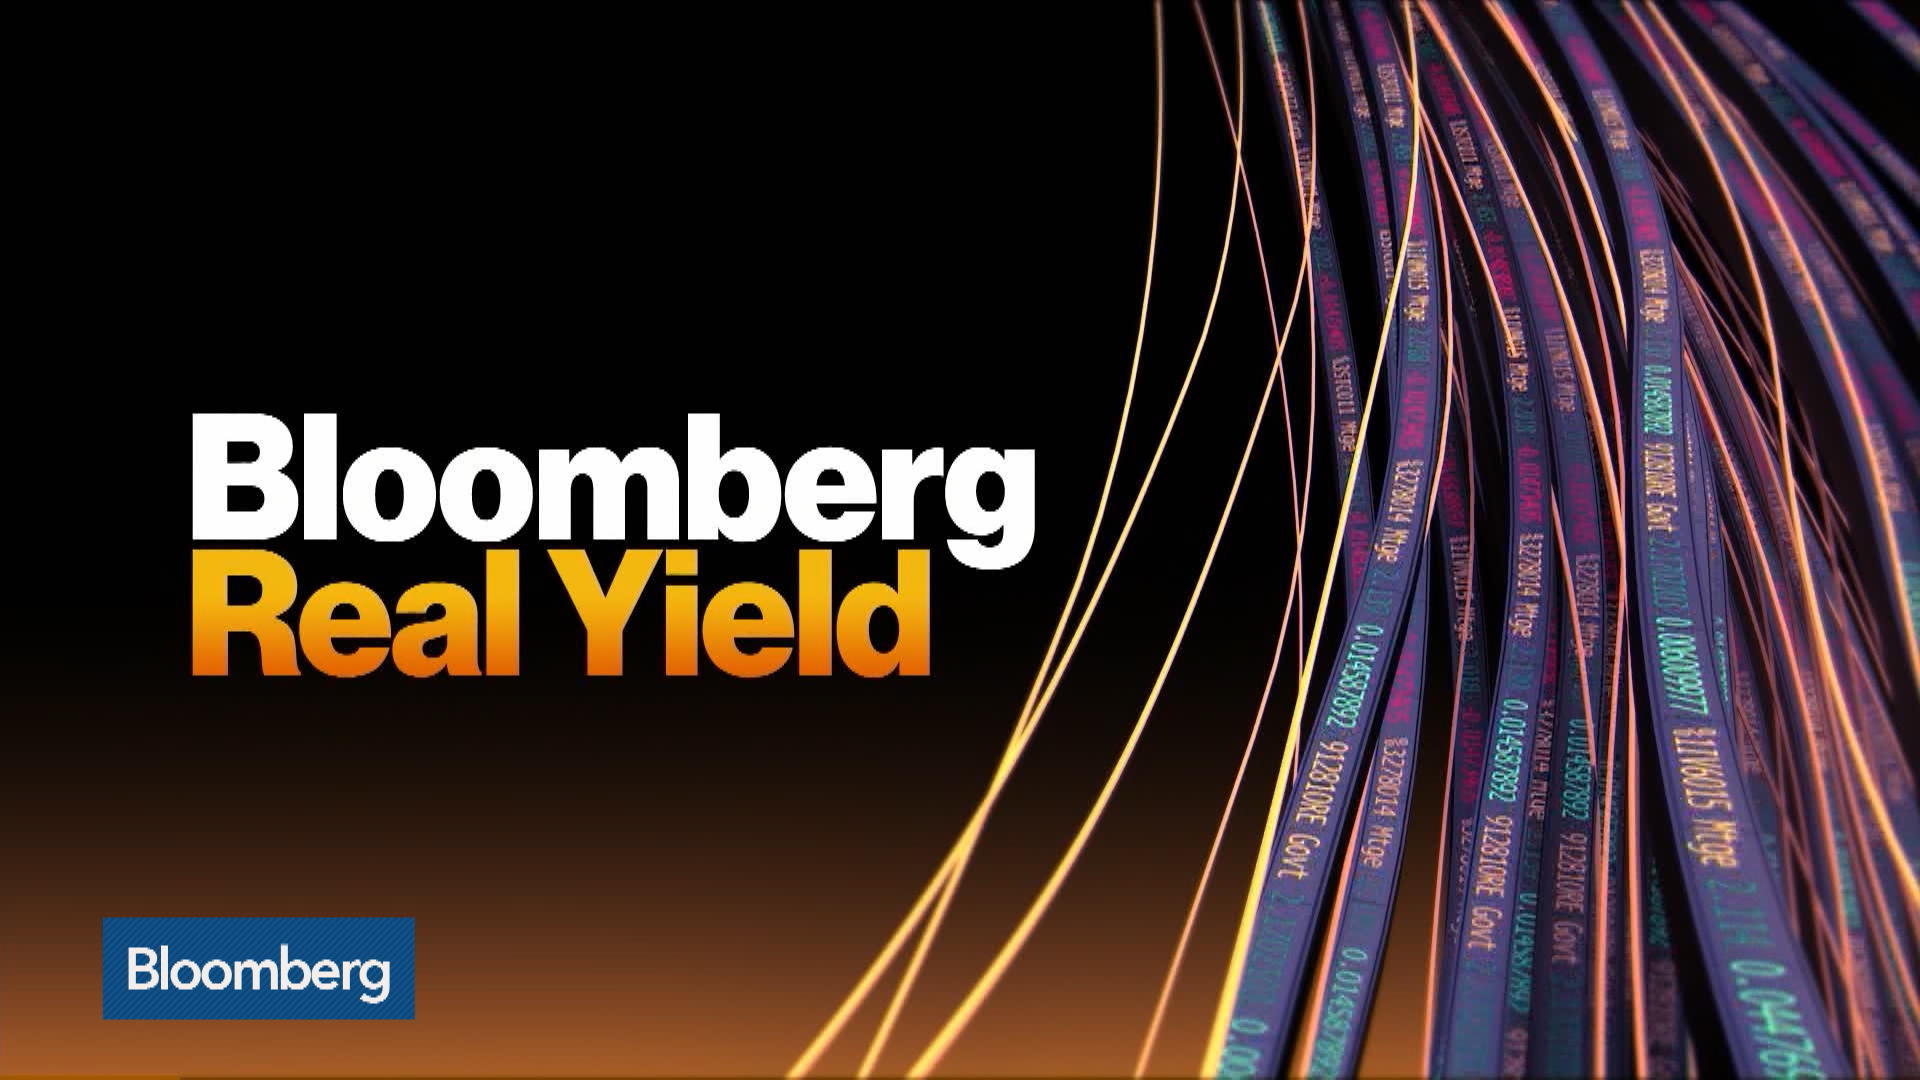 Bloomberg Real Yield' Full Show (06/07/2019) - Bloomberg